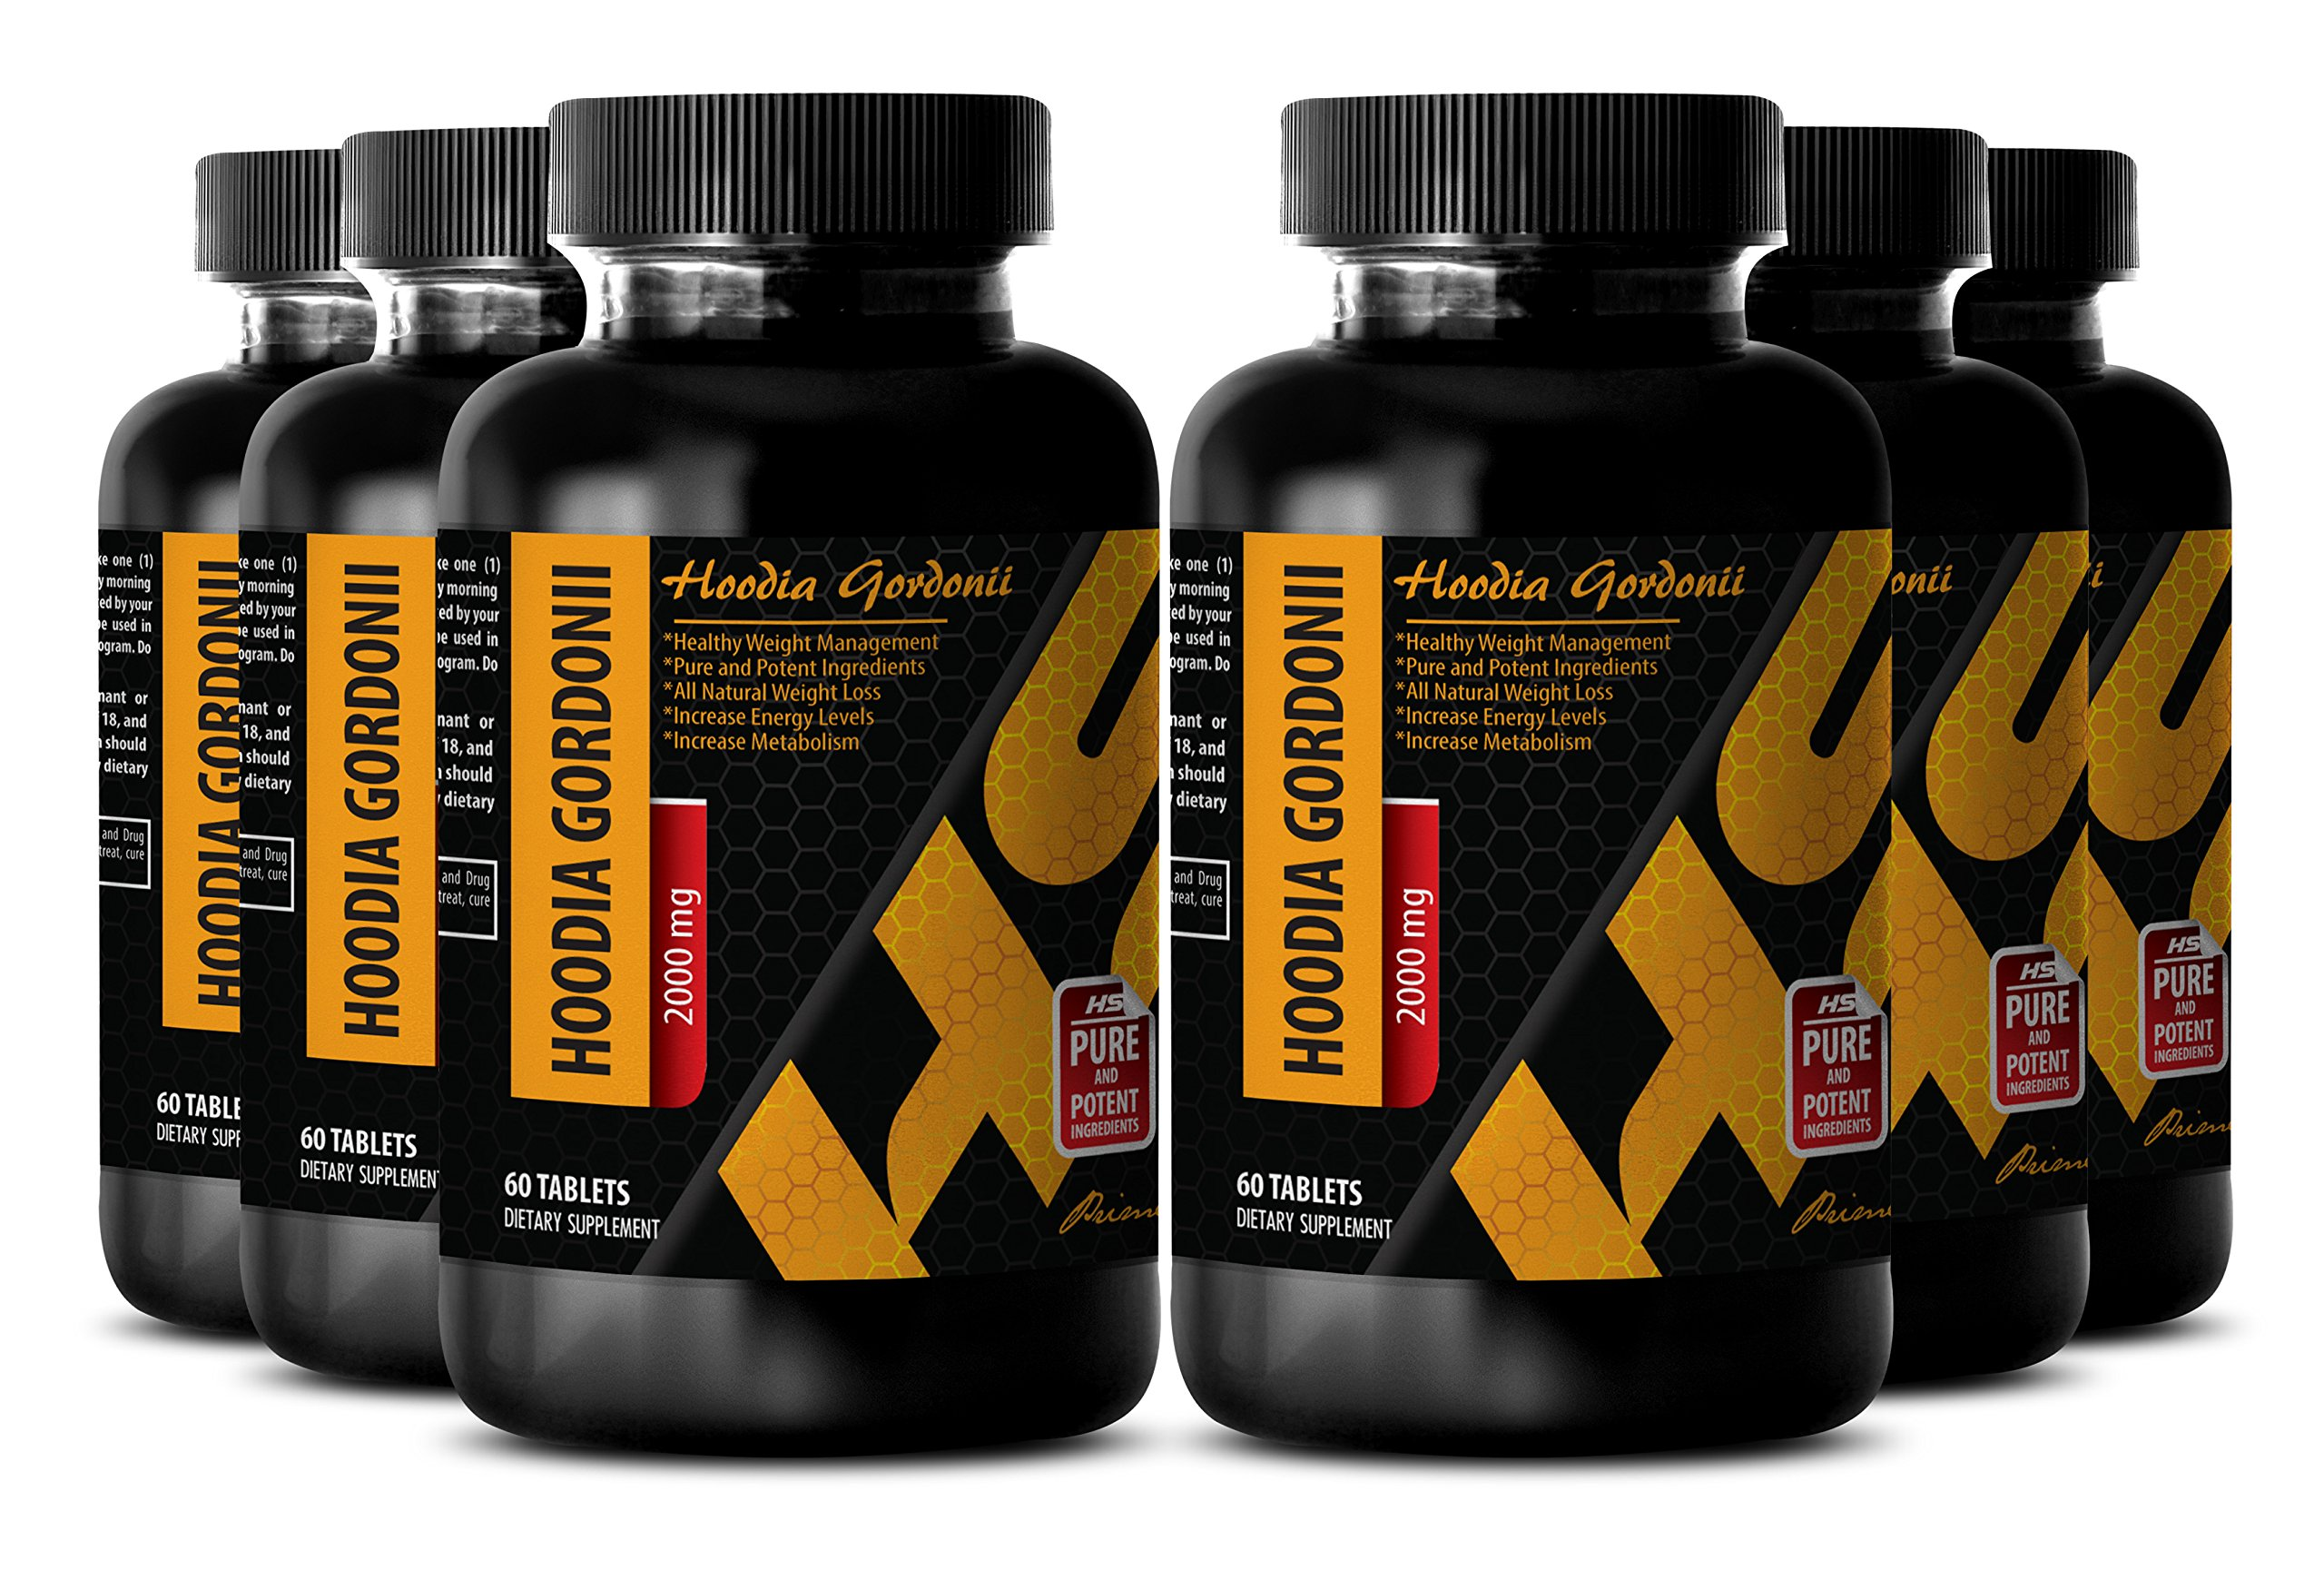 Metabolism fat burner - PURE HOODIA GORDONII EXTRACT 2000 Mg - Suppressant powder - 6 Bottle 360 Tablets